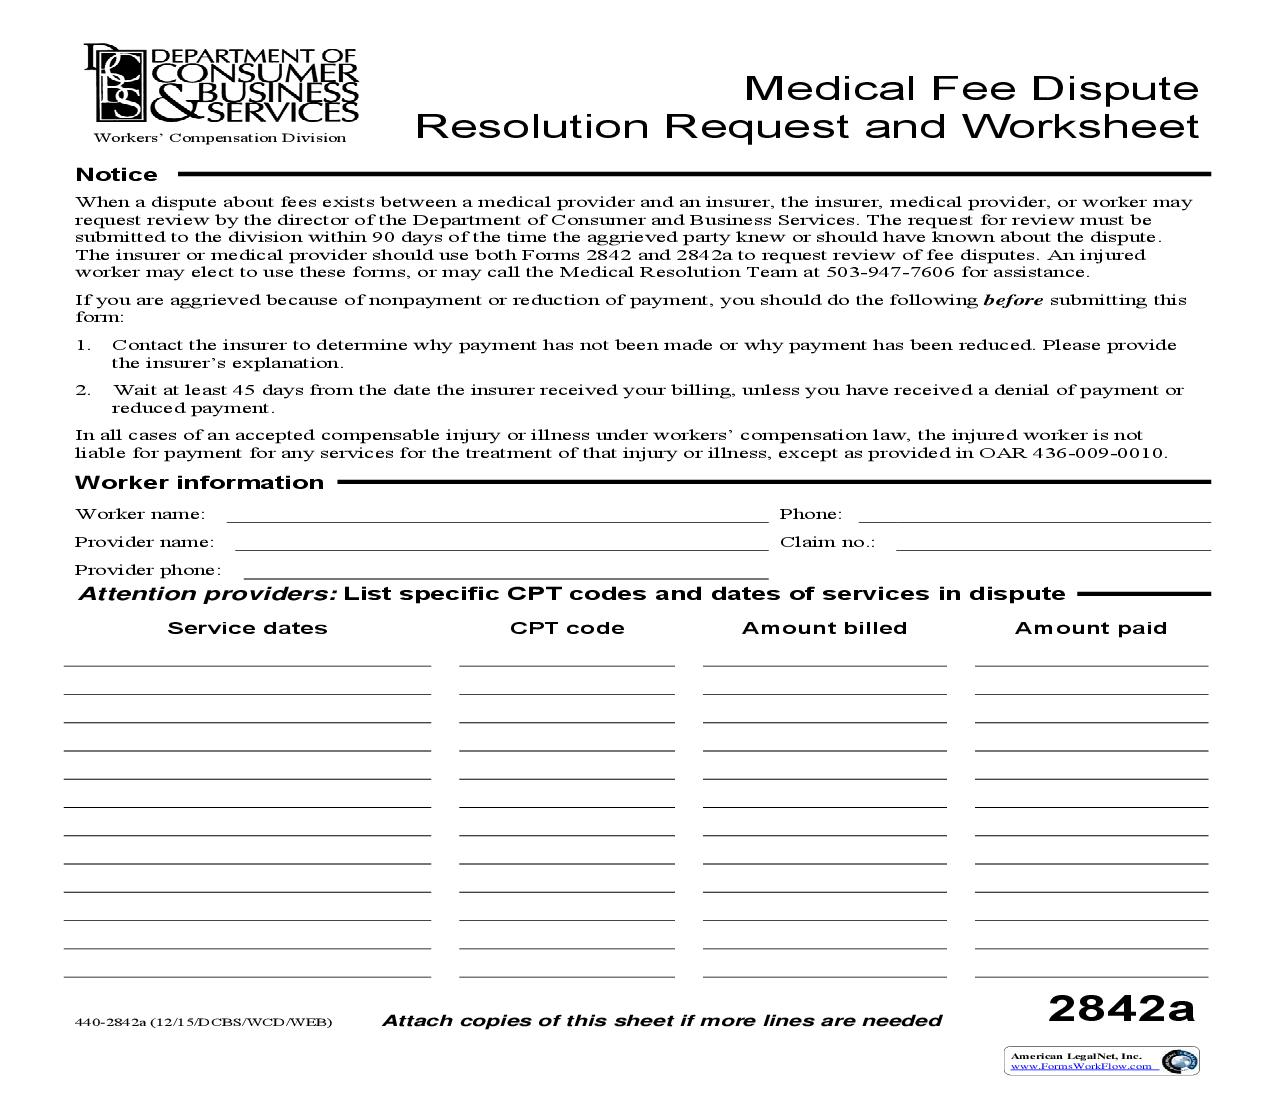 Medical Fee Dispute Resolution Request And Worksheet {2842A} | Pdf Fpdf Doc Docx | Oregon